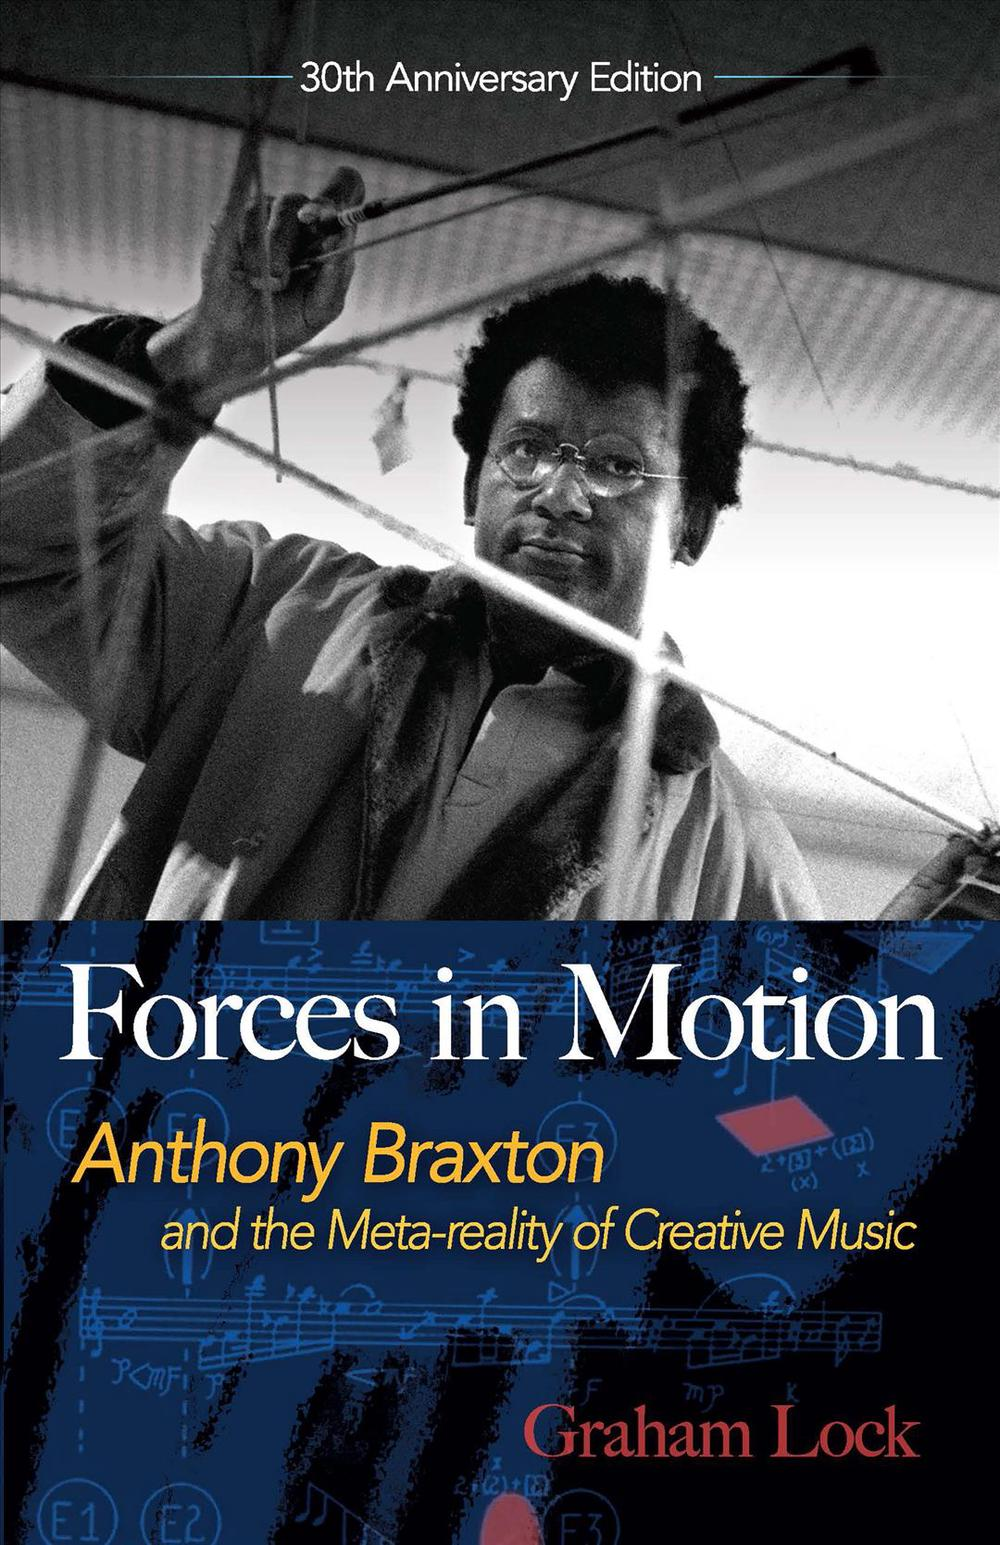 Forces in Motion: Anthony Braxton and the Meta-reality of Creative Music